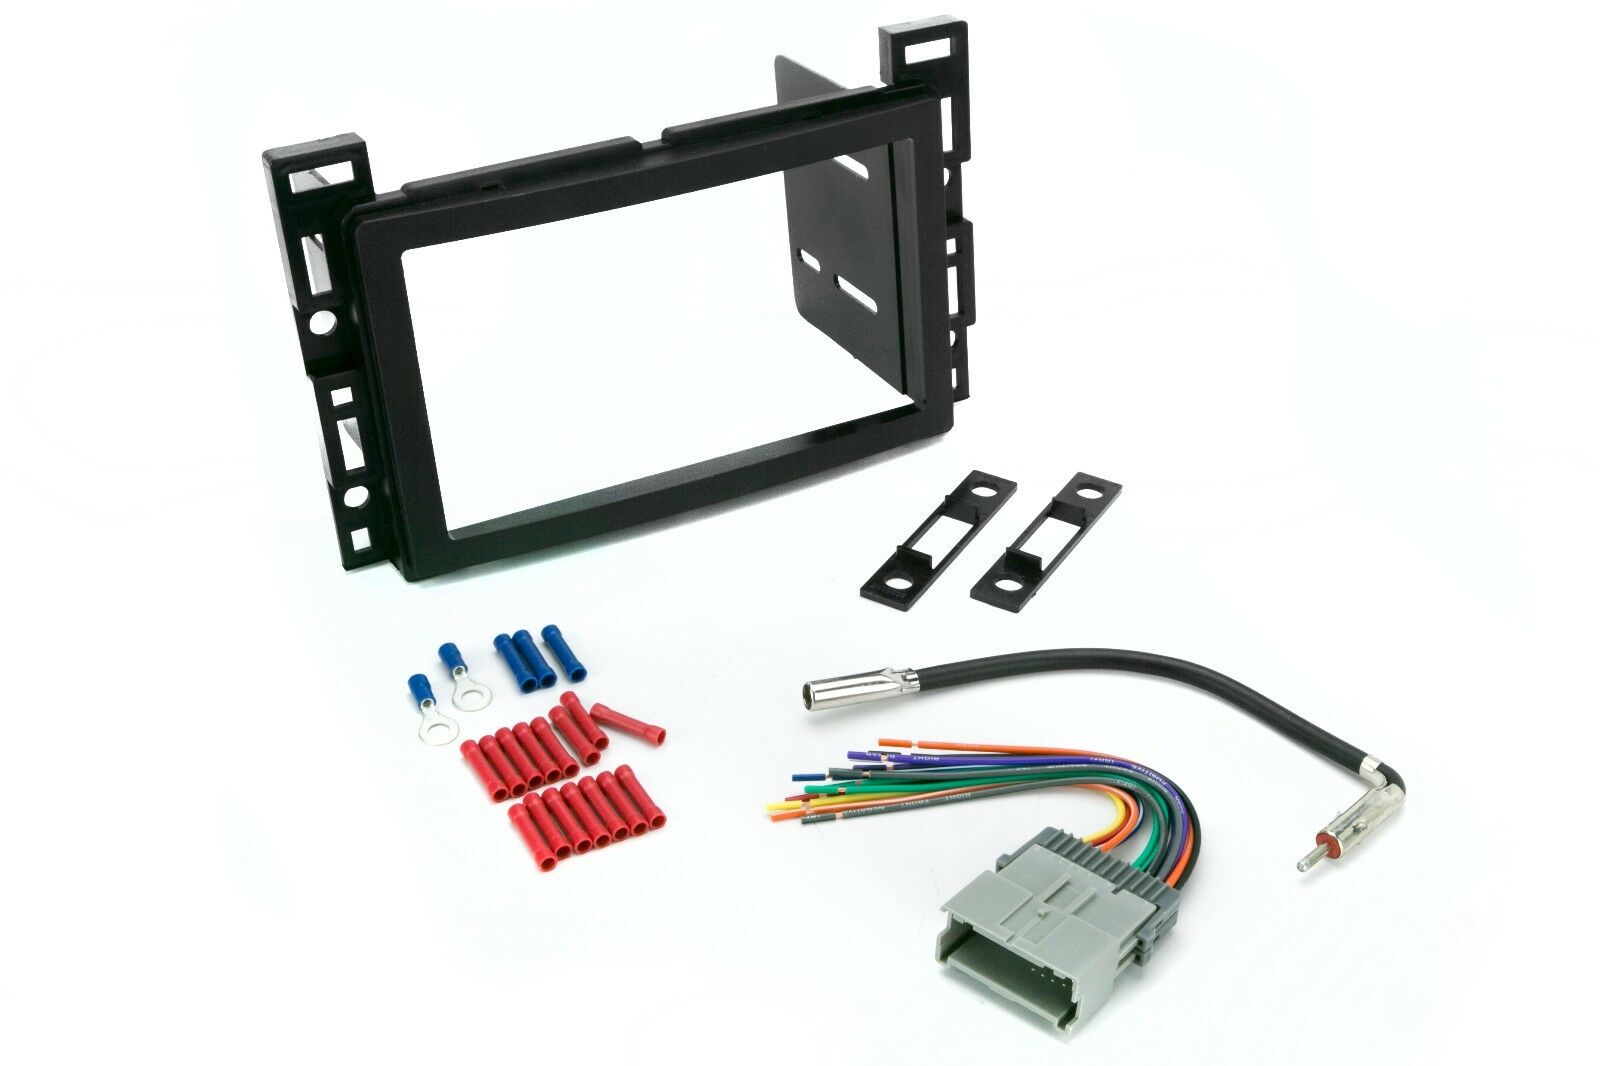 Scosche Gm1599b Double Din Dash Kit For Radio Stereo Install W Wire Wiring Harness Ford 1 Of See More